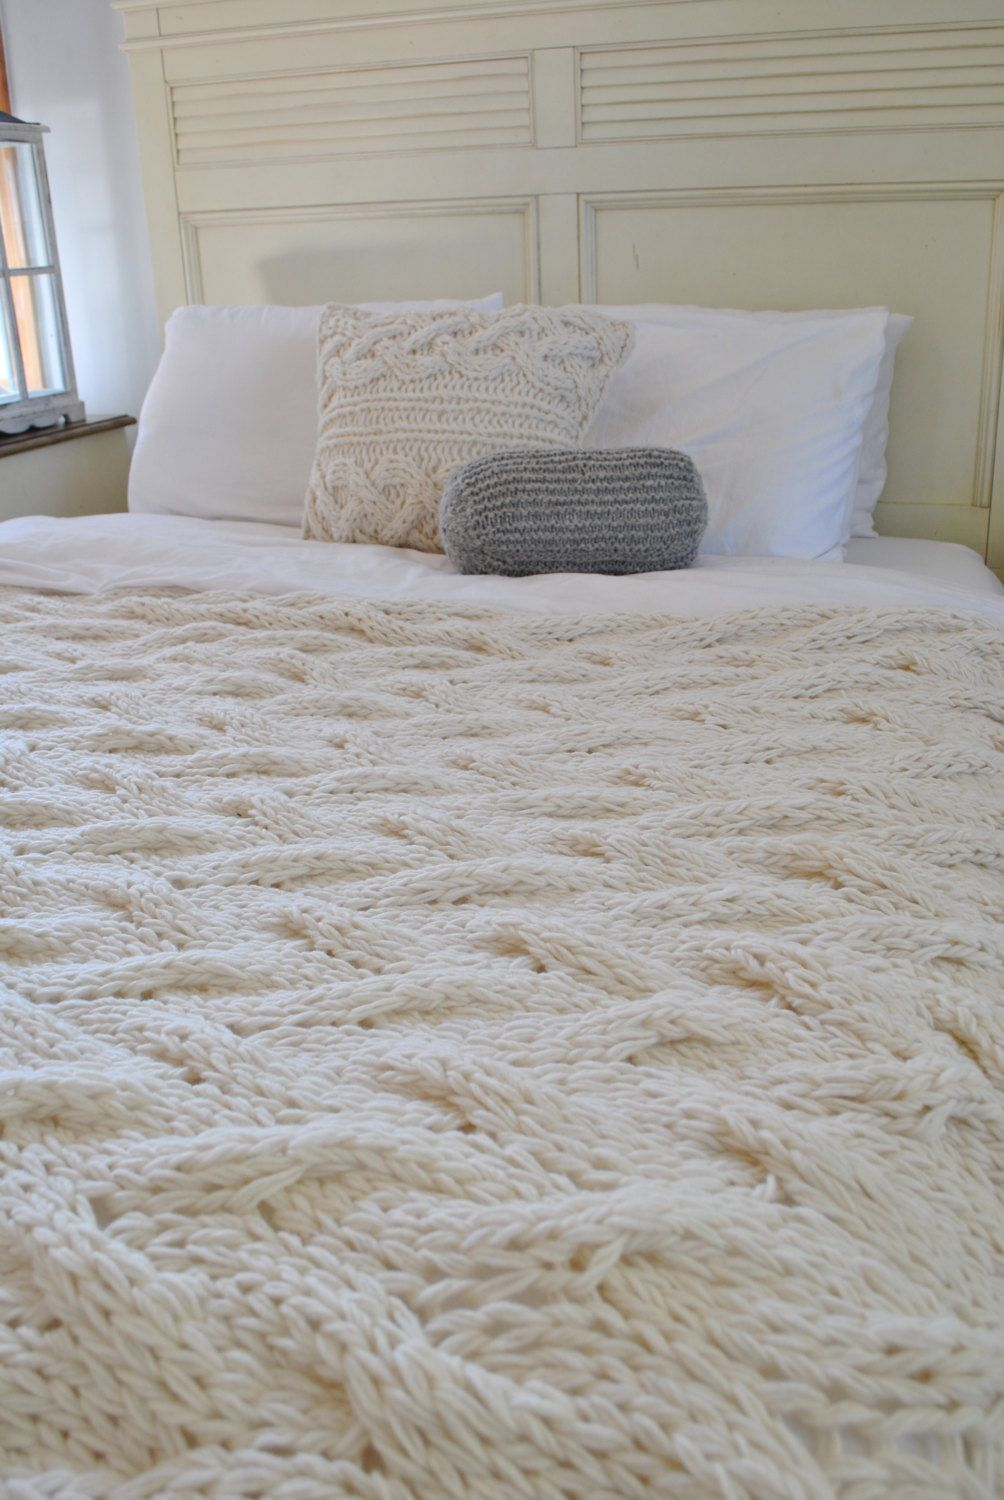 Chunky Cable Knit Blanket, Cream, Irish Wool by CampKitschyKnits, $179.00  But I want it so badly!!!